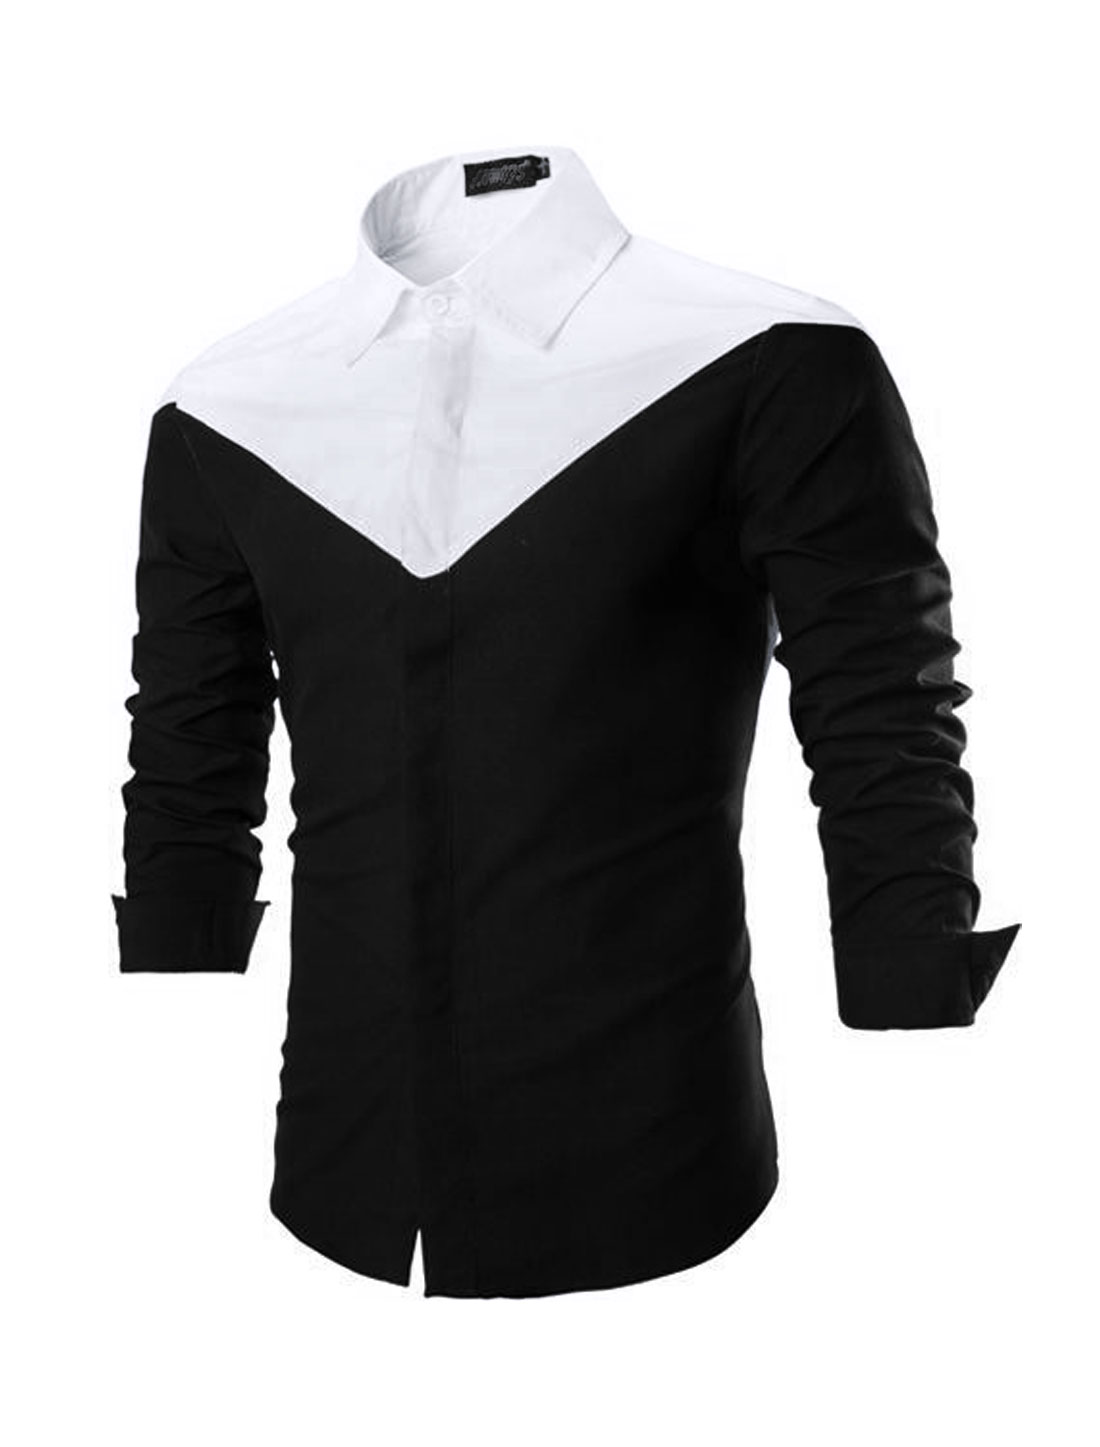 Men Turn-Down Collar Slim Fit Casual Shirts Black White S